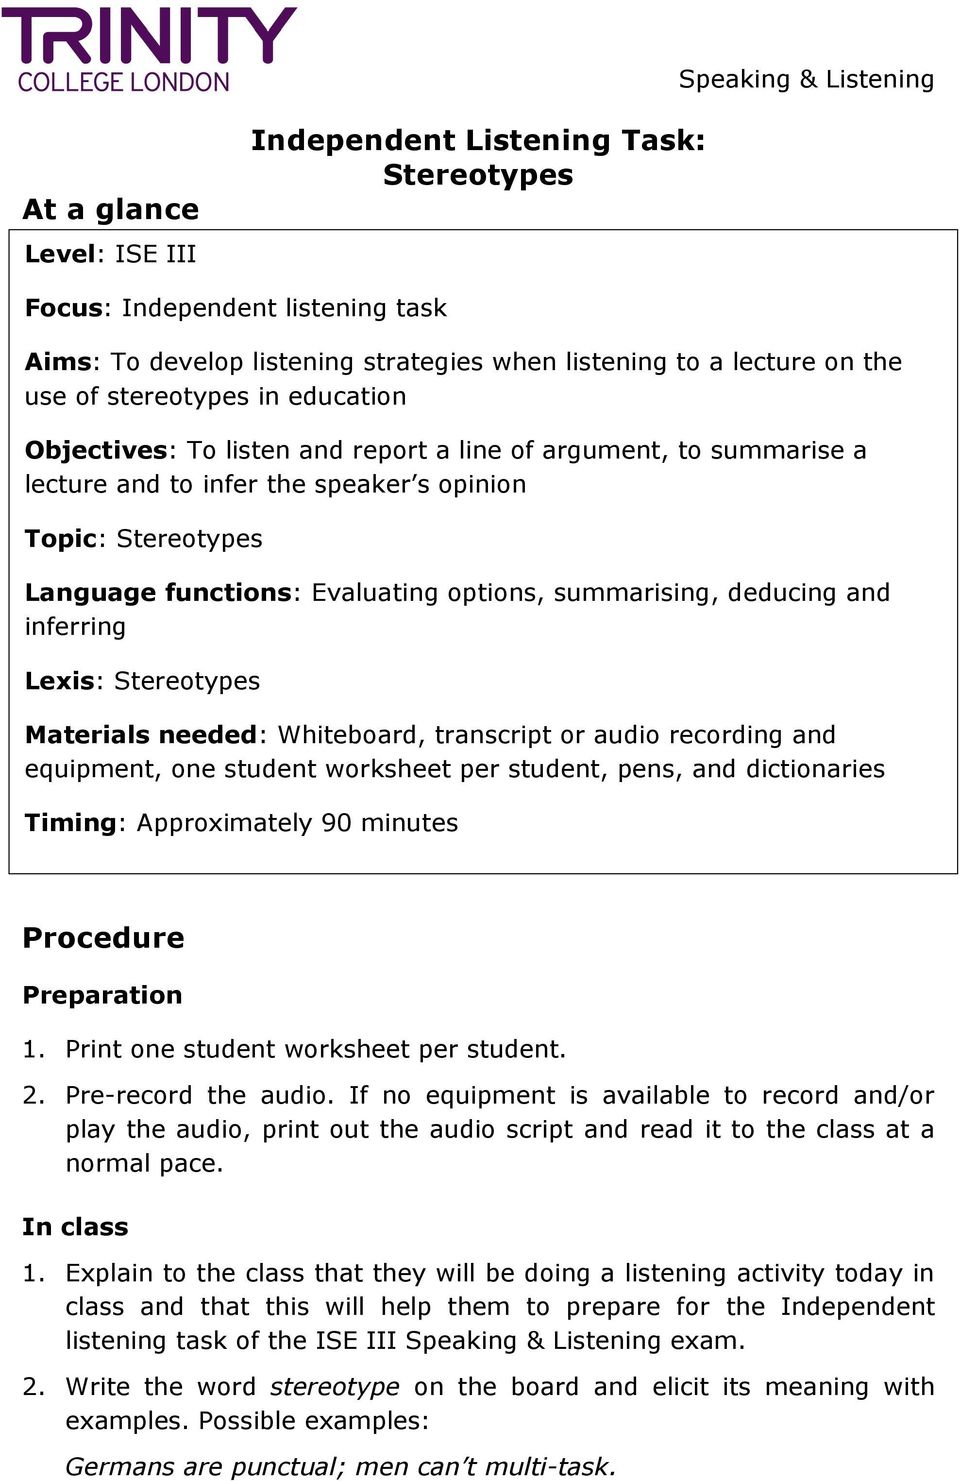 deducing and inferring Lexis: Stereotypes Materials needed: Whiteboard, transcript or audio recording and equipment, one student worksheet per student, pens, and dictionaries Timing: Approximately 90